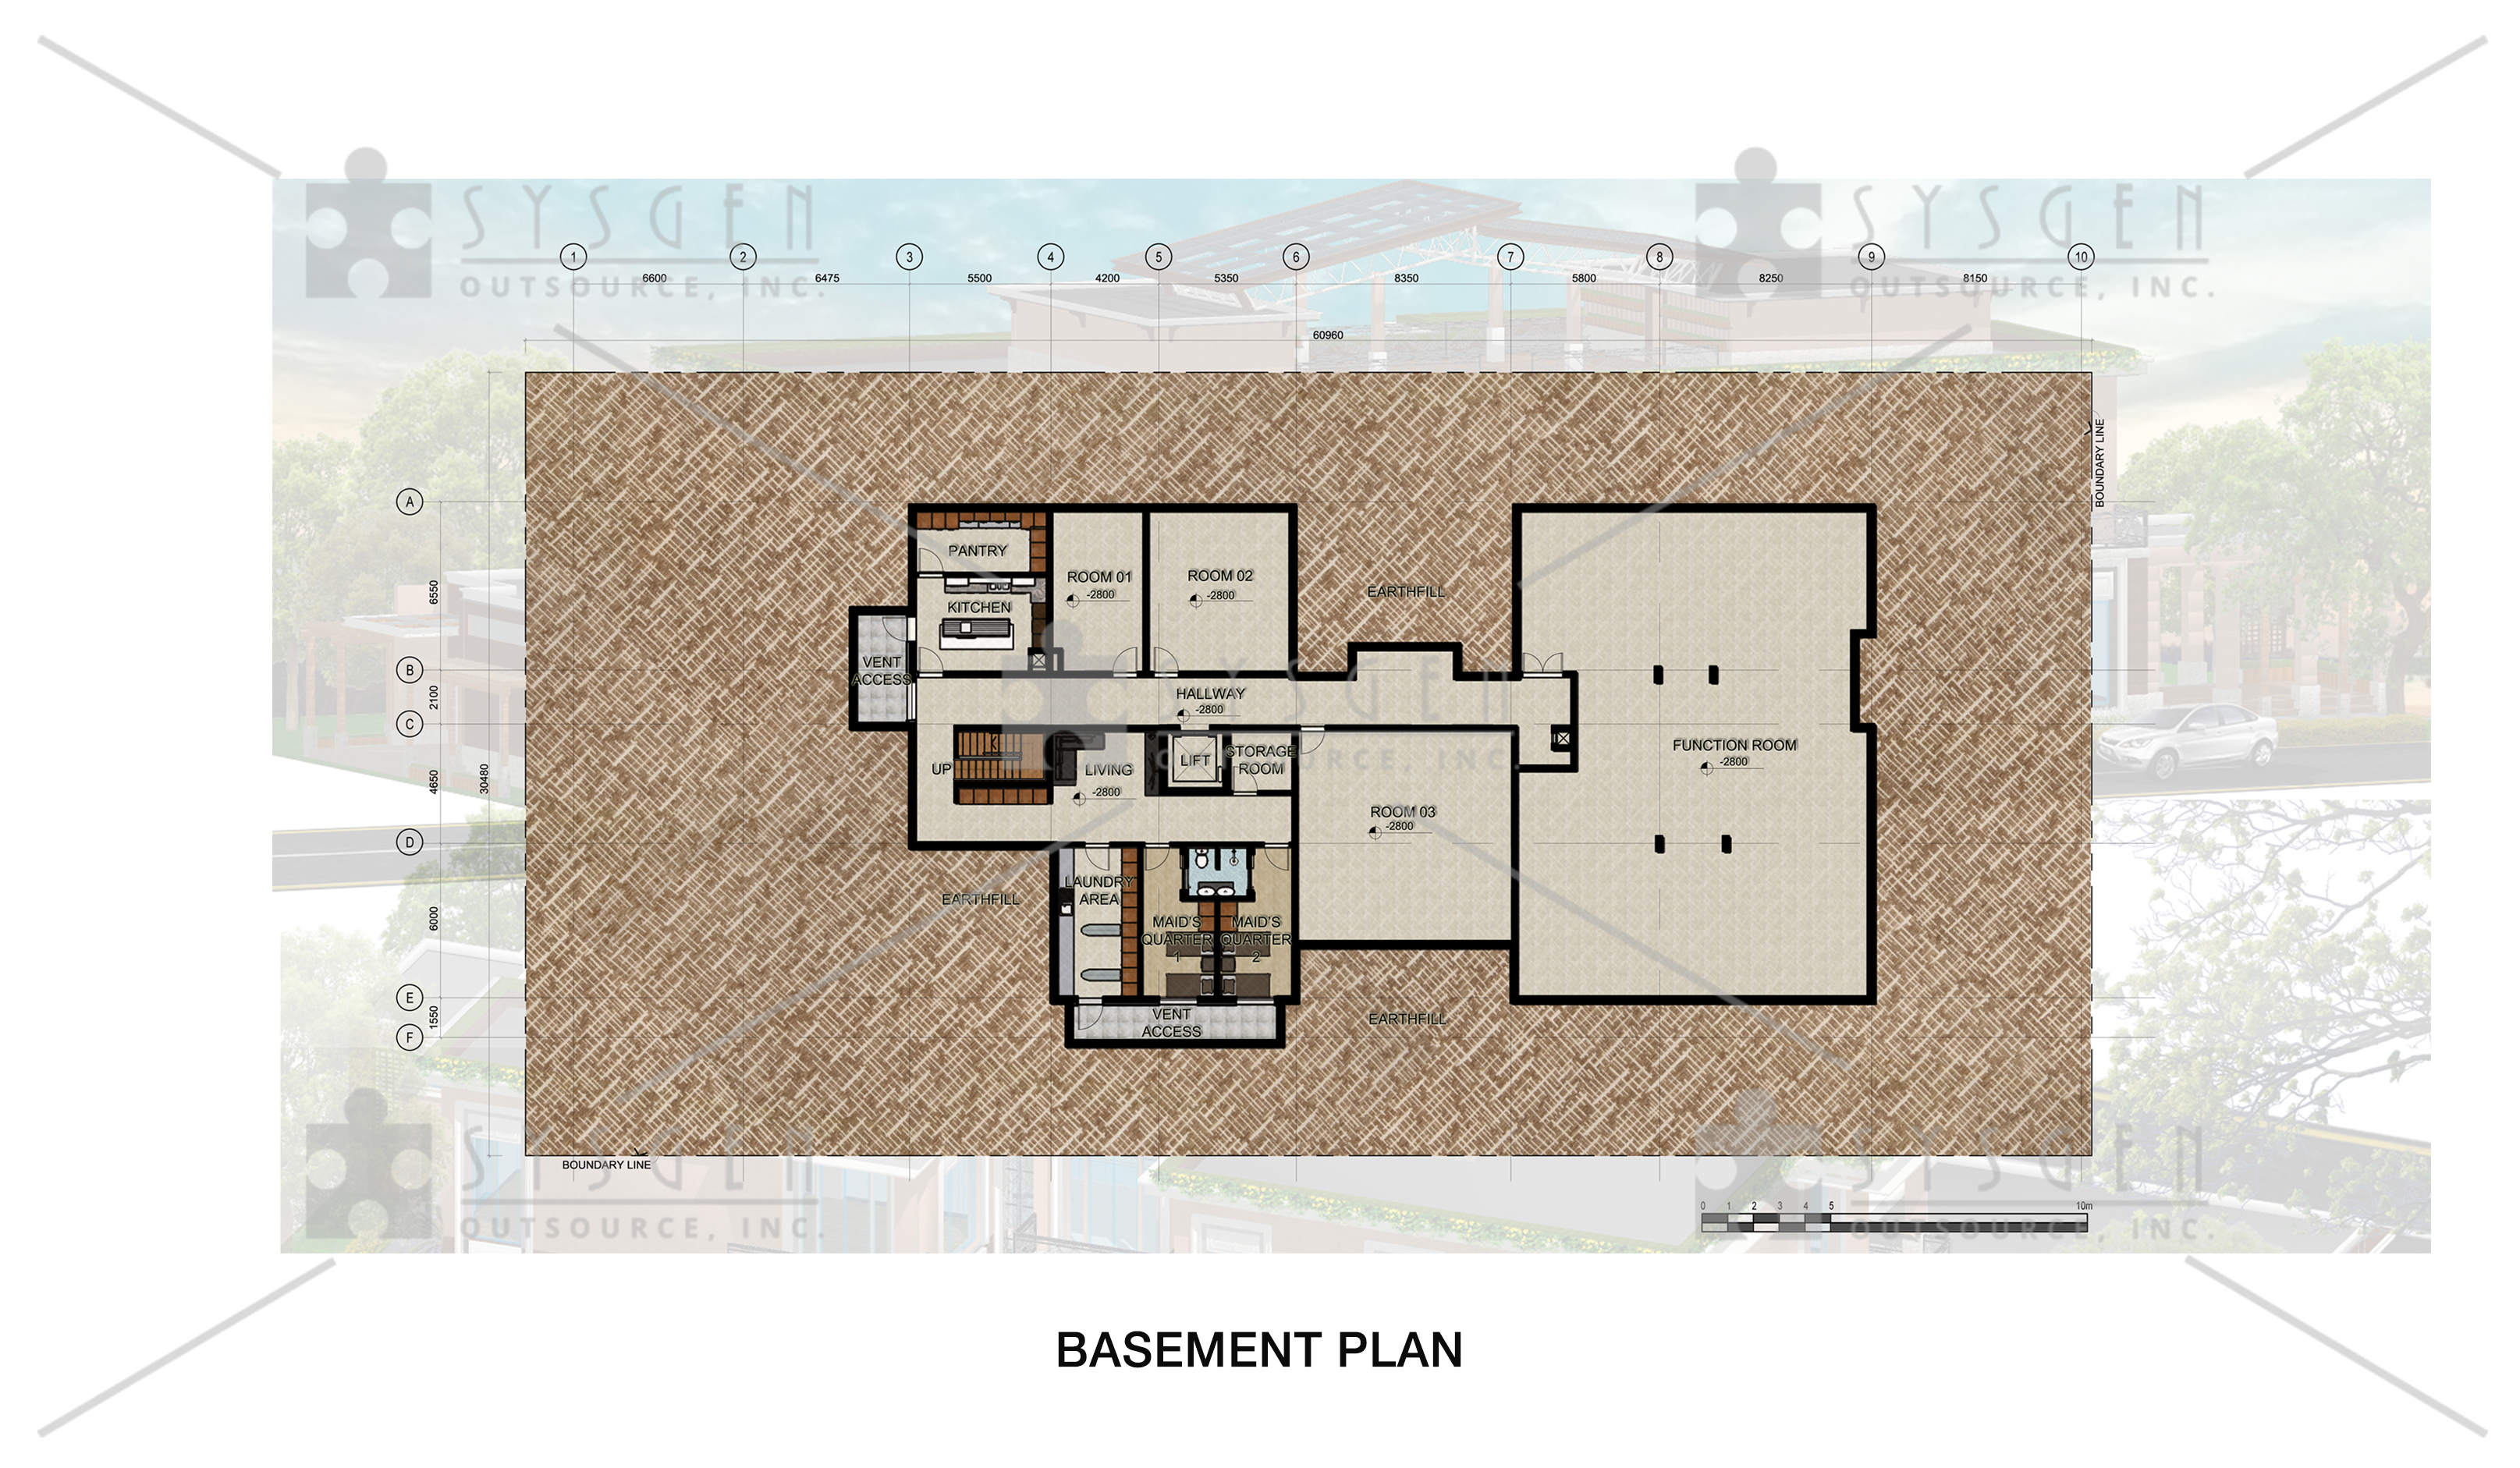 sysgen-outsource-cad-outsourcing-services-sketch-up-residential_villa-katnis3